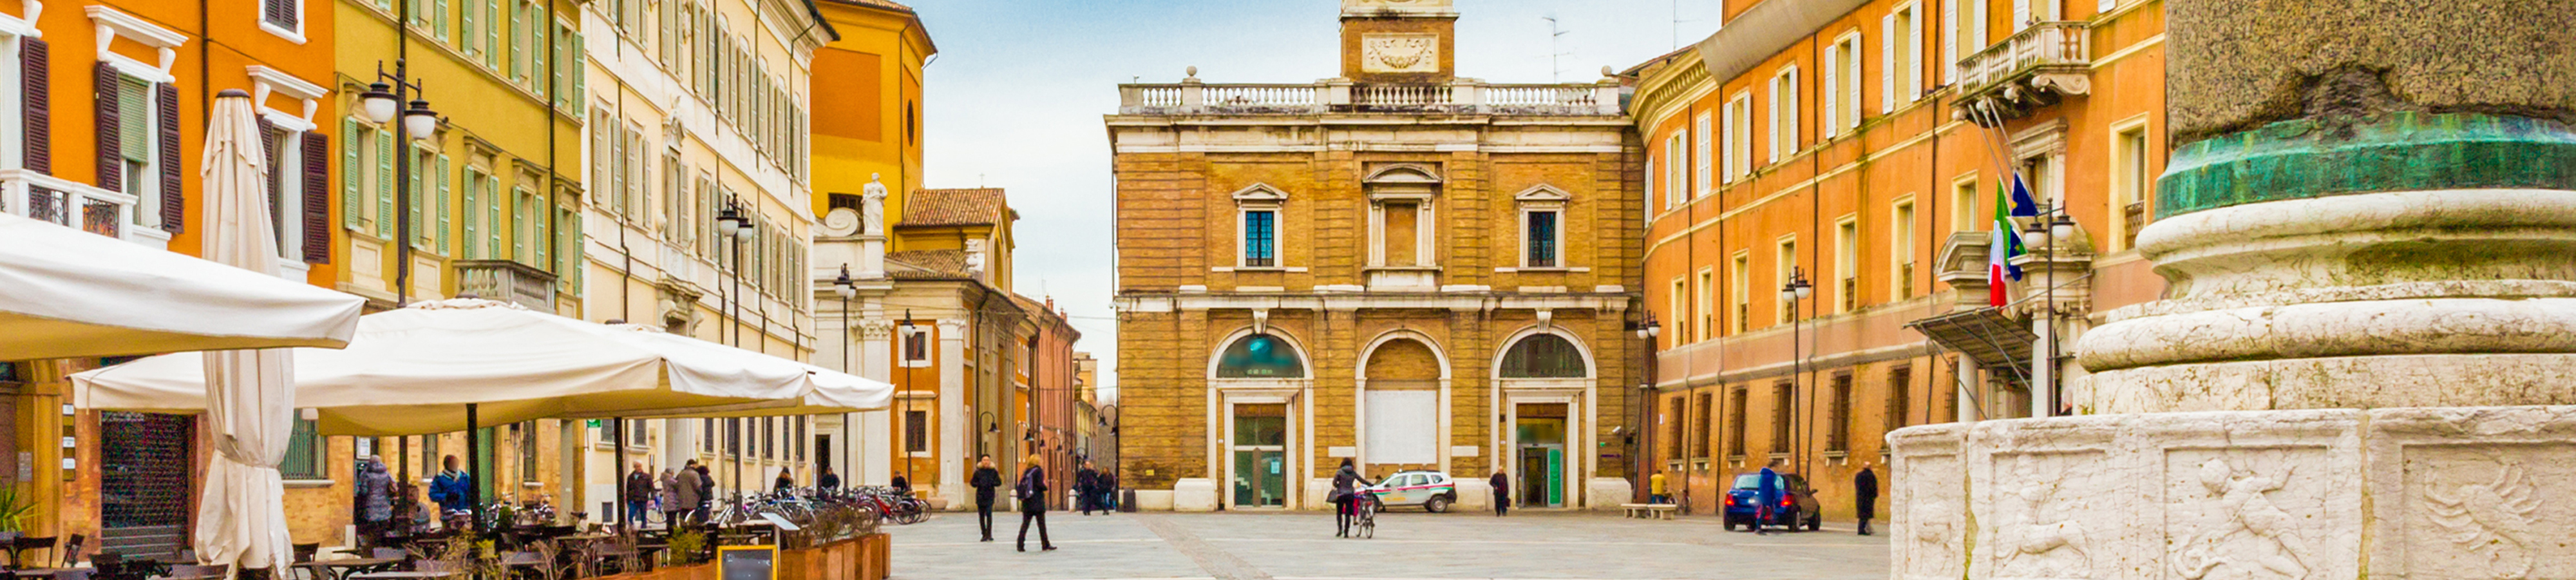 Tours From Bologna To Ravenna